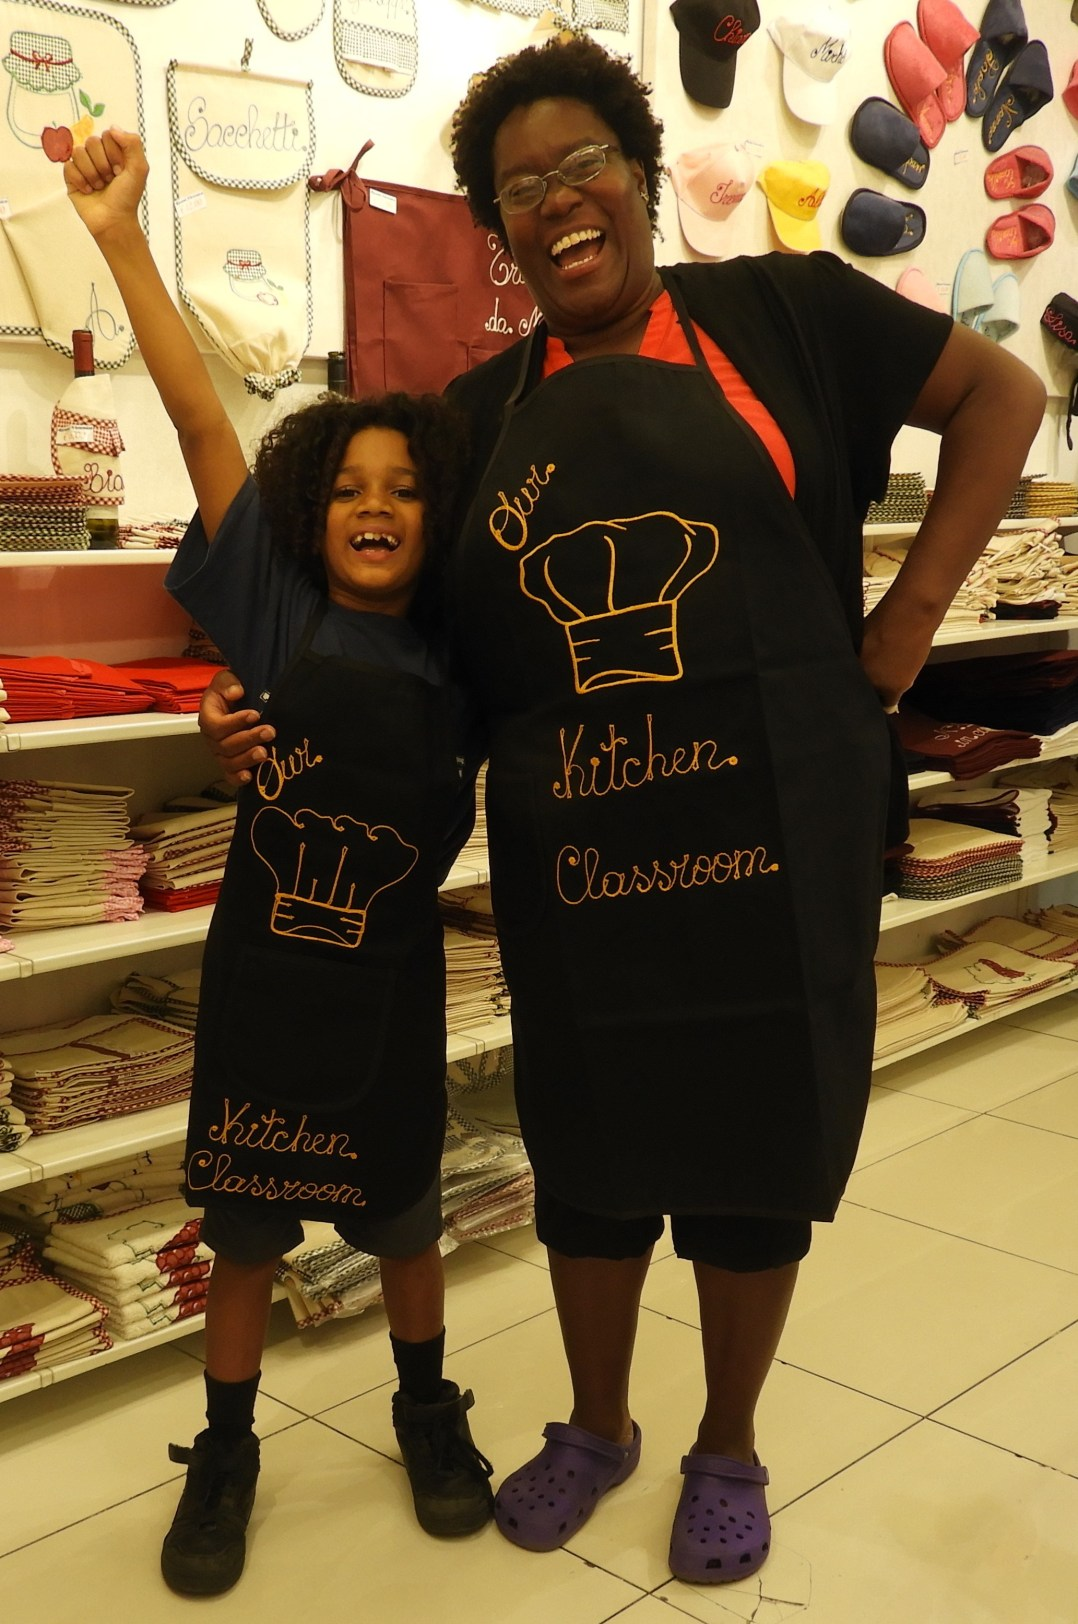 Our Kitchen Classroom Aprons